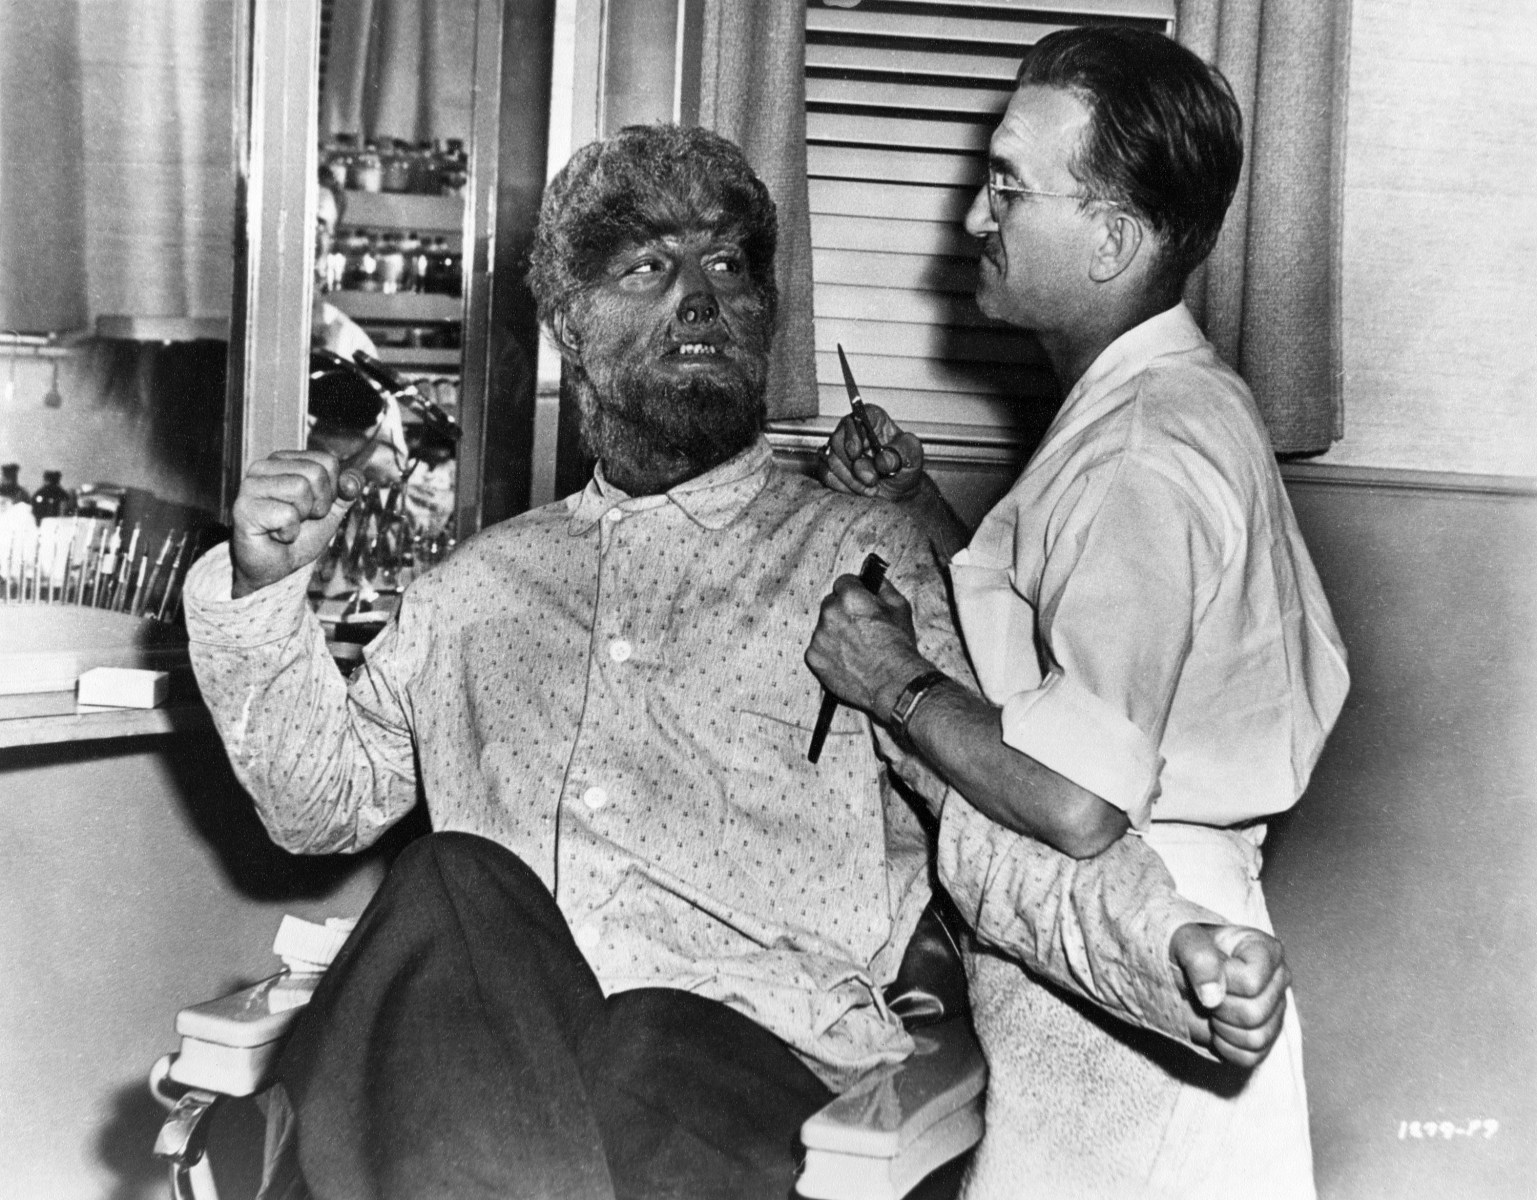 During The Production Of The Film The Wolf Man (1941) Behind the Scenes